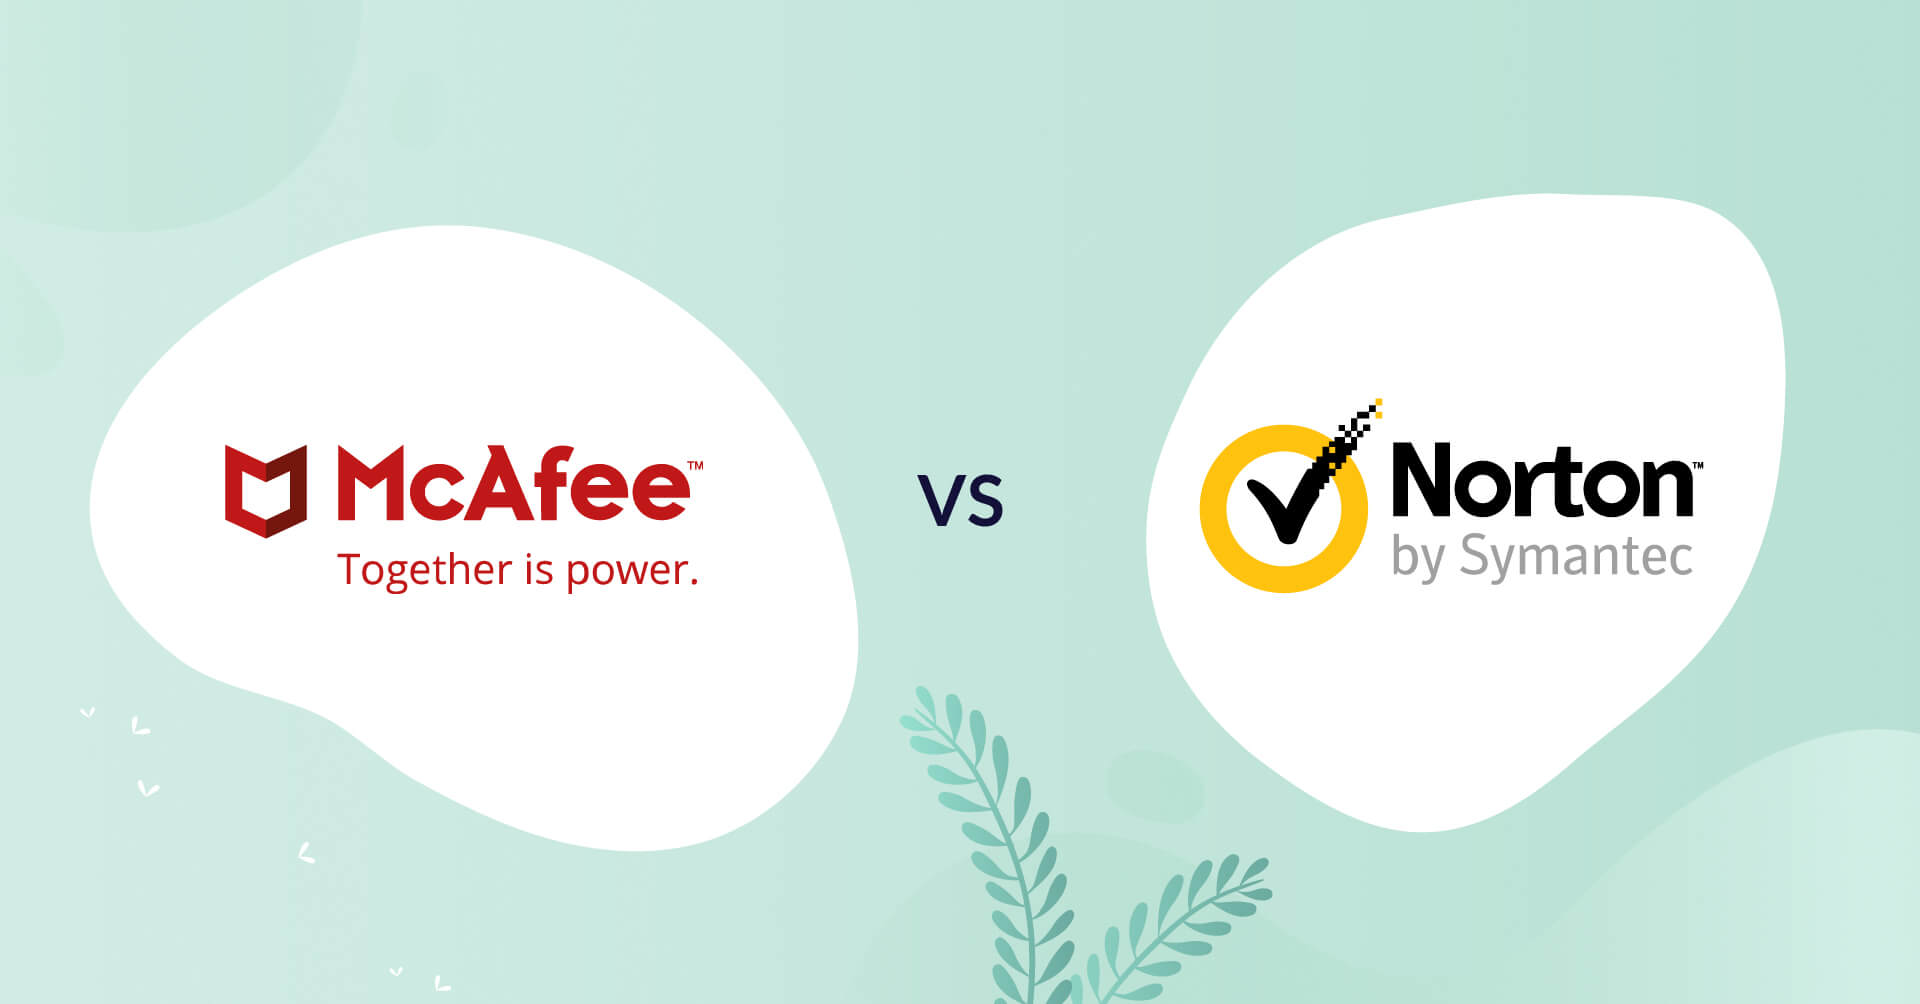 mcafee logo vs norton logo antivirus comparison header for how to choose article